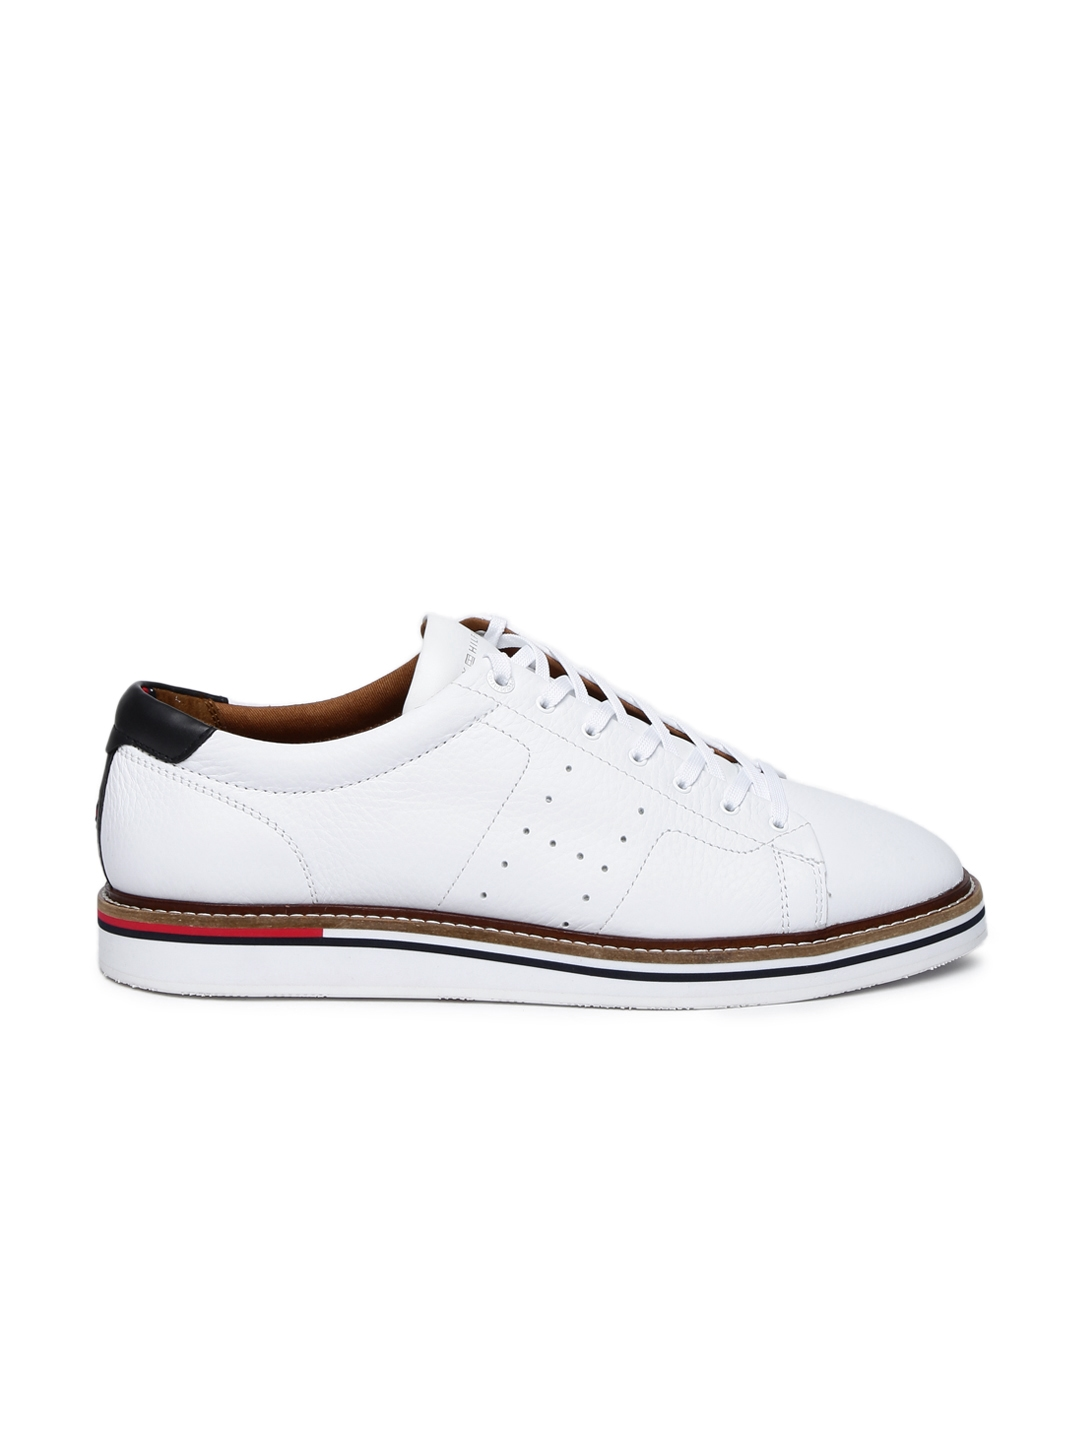 3f3cec92bc4f3 Buy Tommy Hilfiger Men White Sneakers - Casual Shoes for Men 2477425 ...